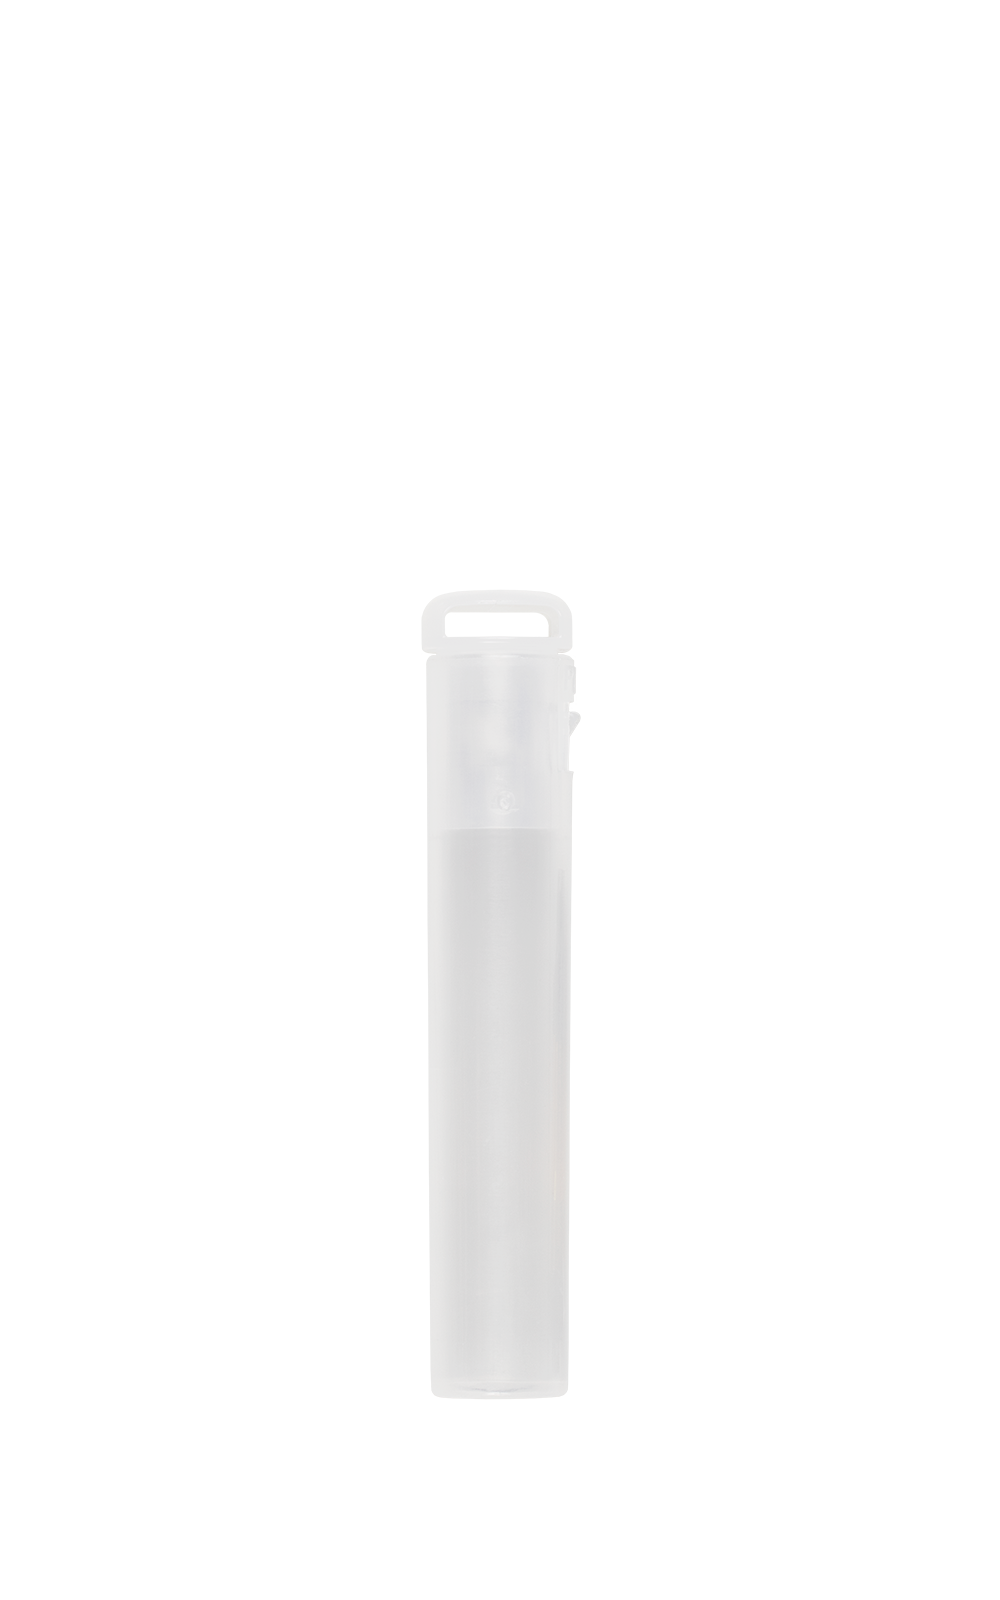 crpak-tube-87-Side-Empty.png